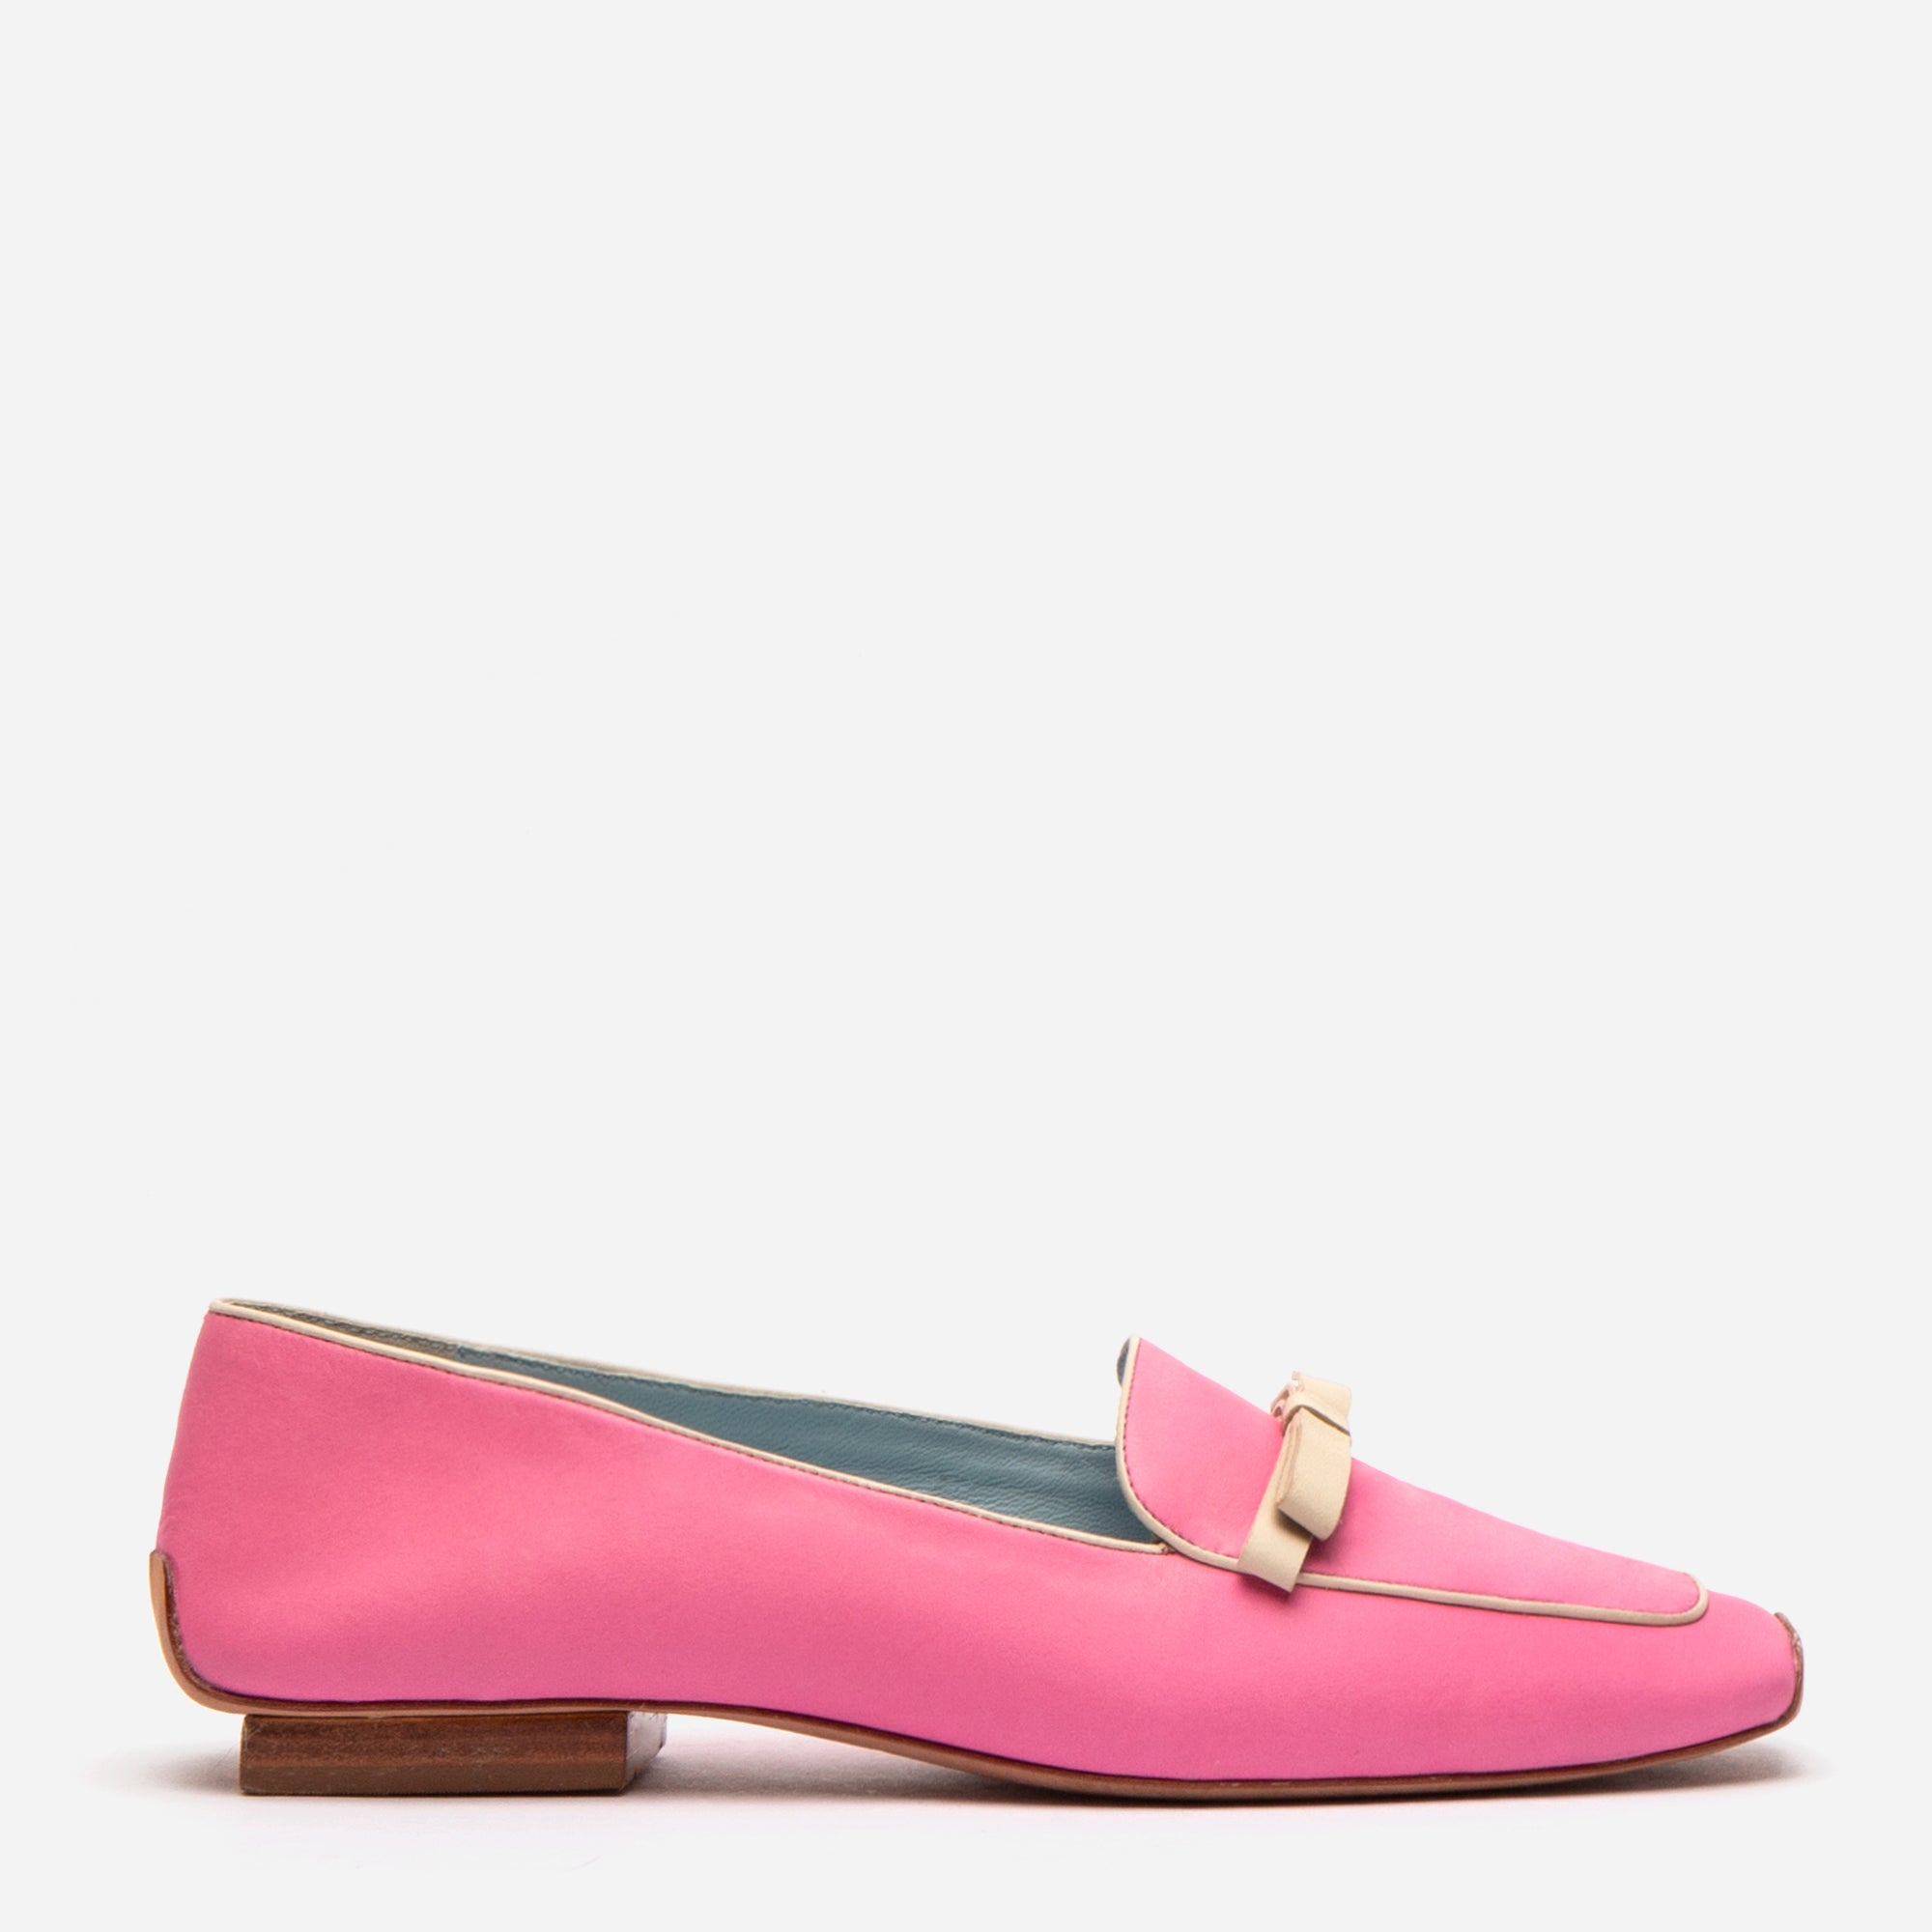 Suzanne Loafer Leather Pink Oyster - Frances Valentine